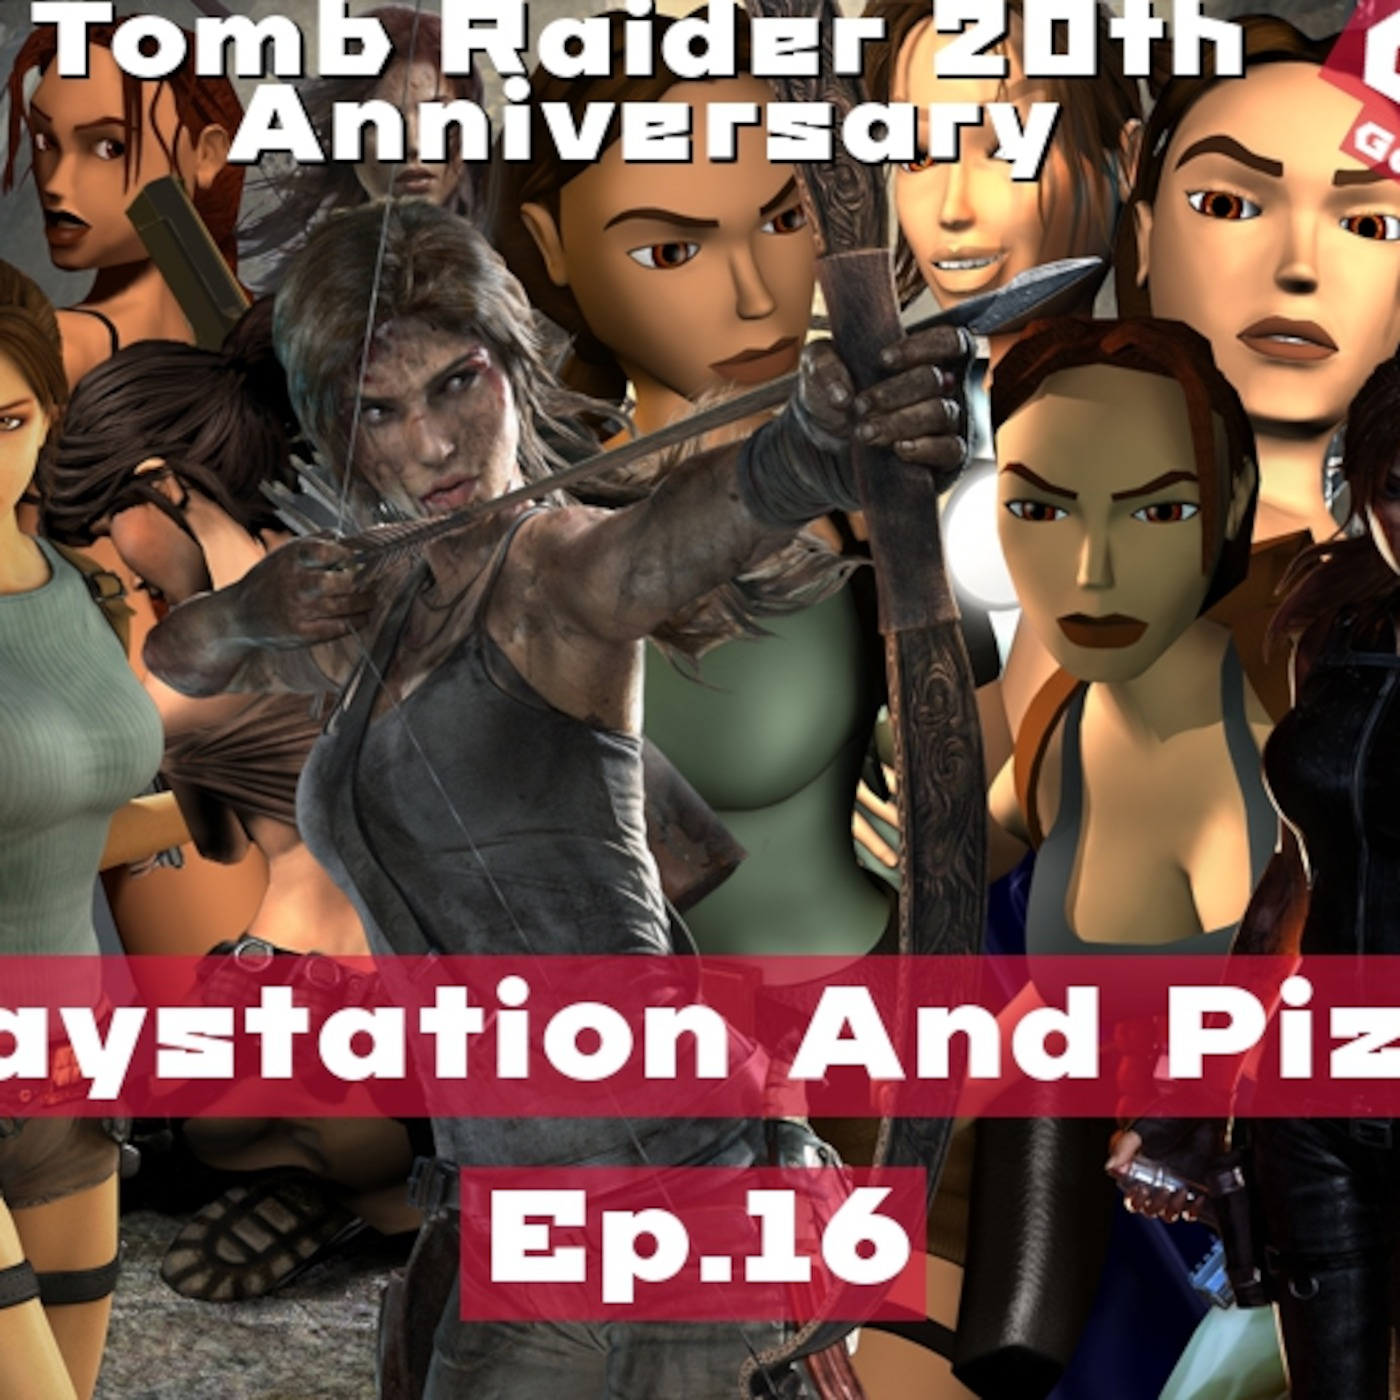 Playstation Pizza Ep 16 20 Yrs Of Tomb Raider Rise The Sony Ps4 In This Edition Our Thoughts On A Finally Coming To Details Cinematic Mode For Ps Vr